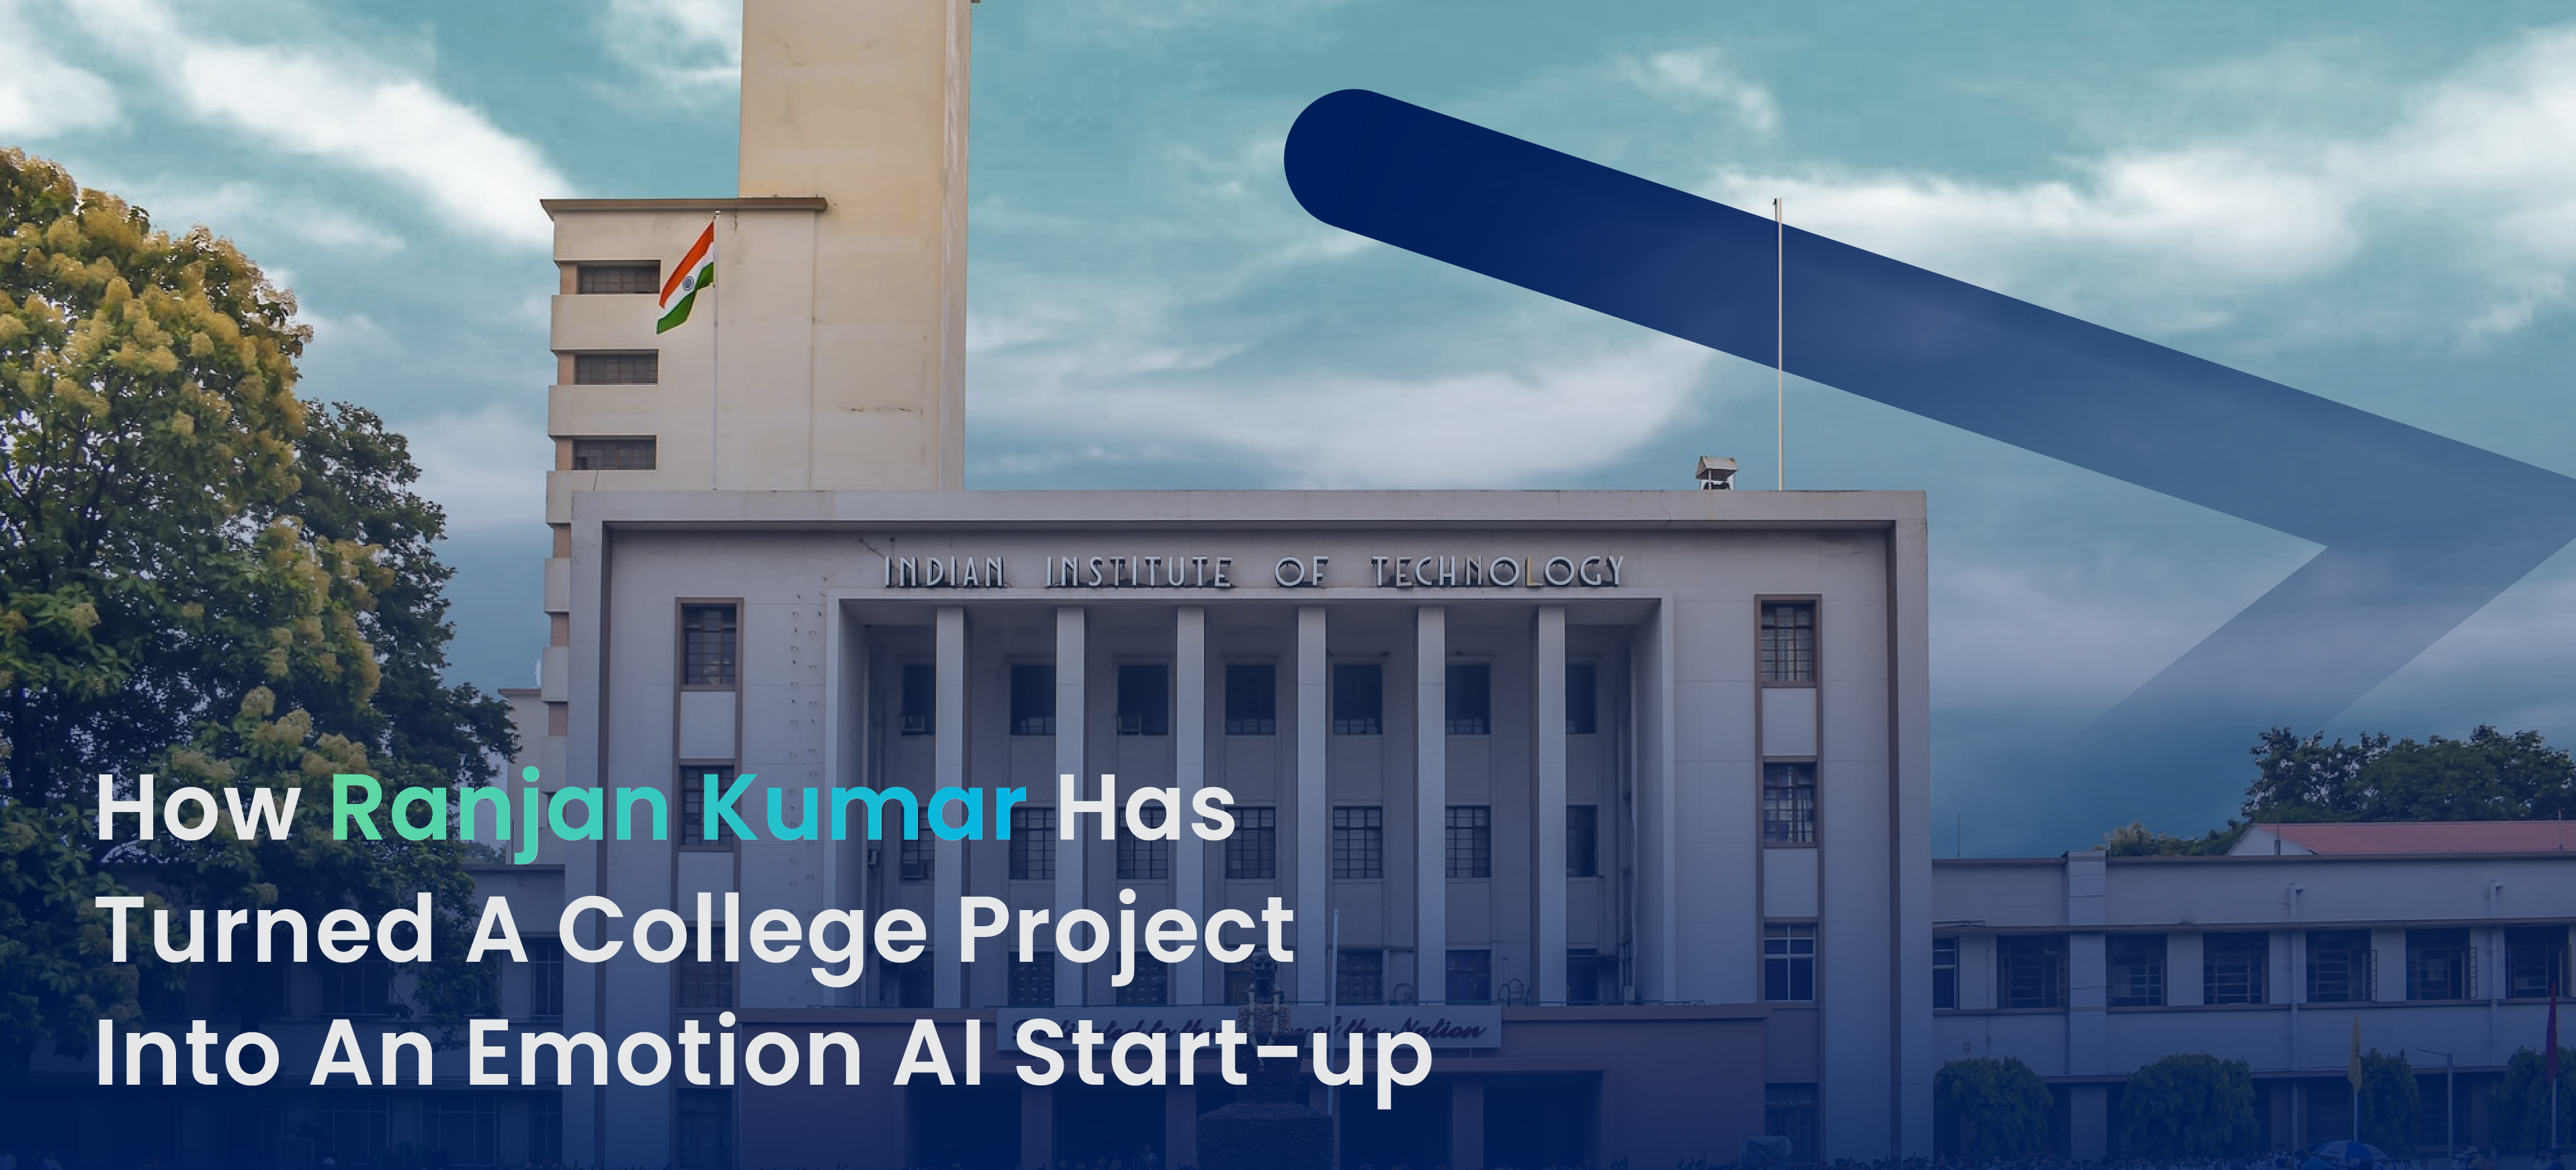 How Ranjan Kumar has turned a college project into an Emotion AI Start-up